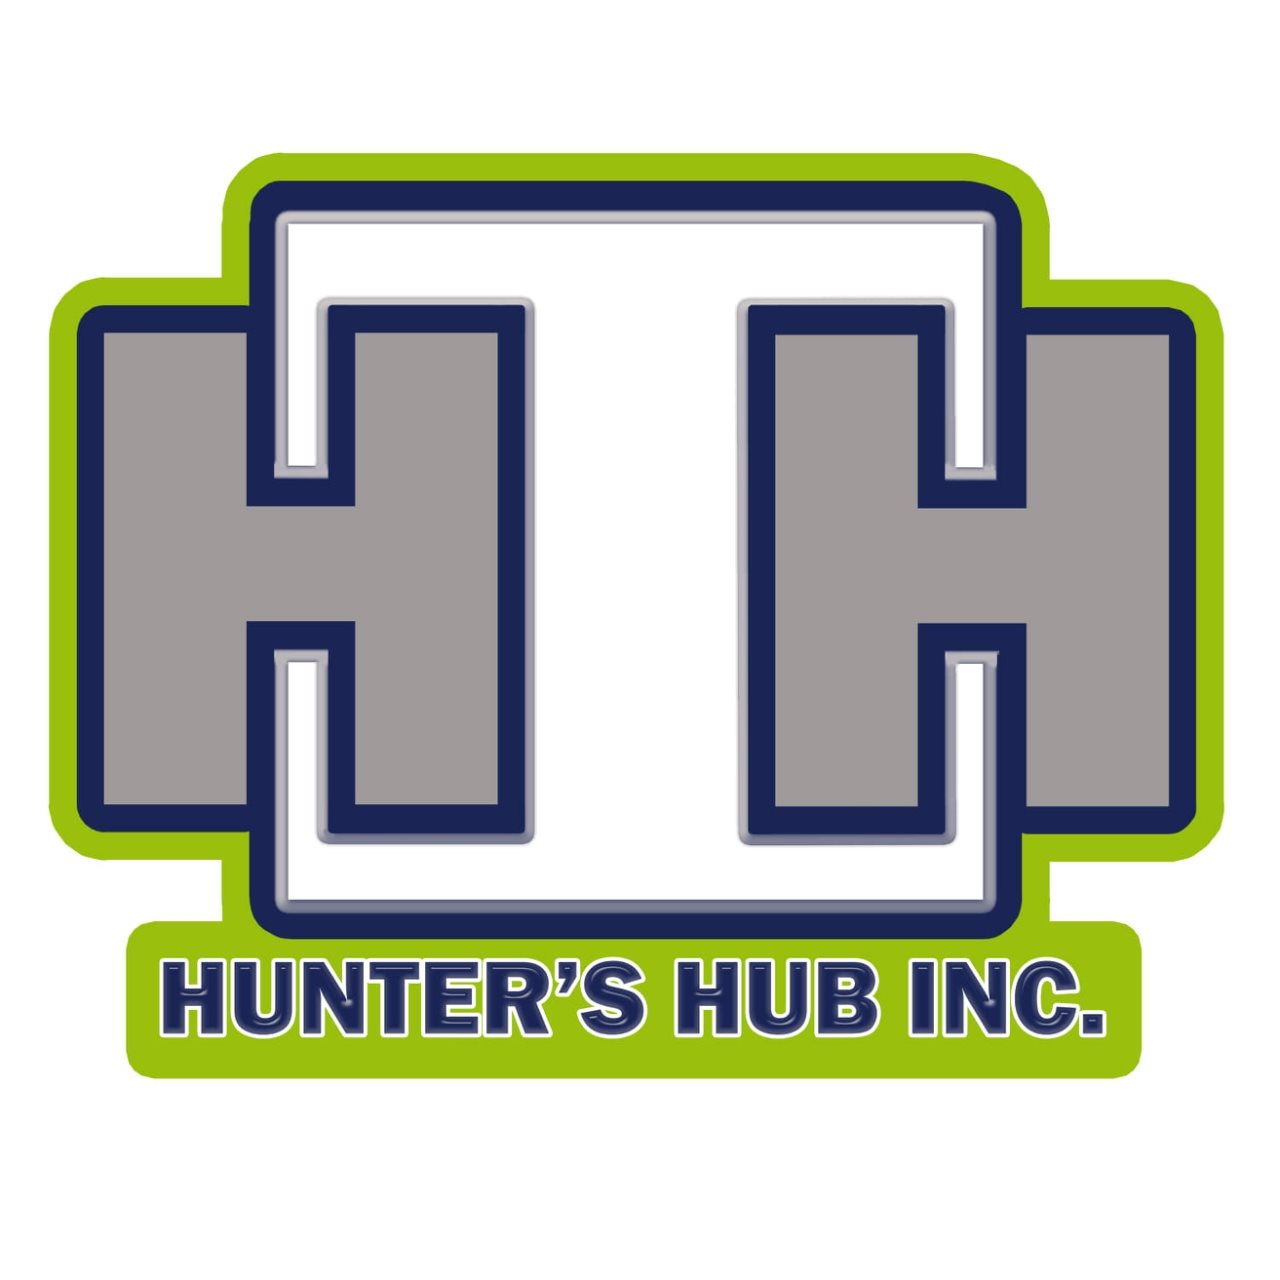 Hunter's Hub Inc.